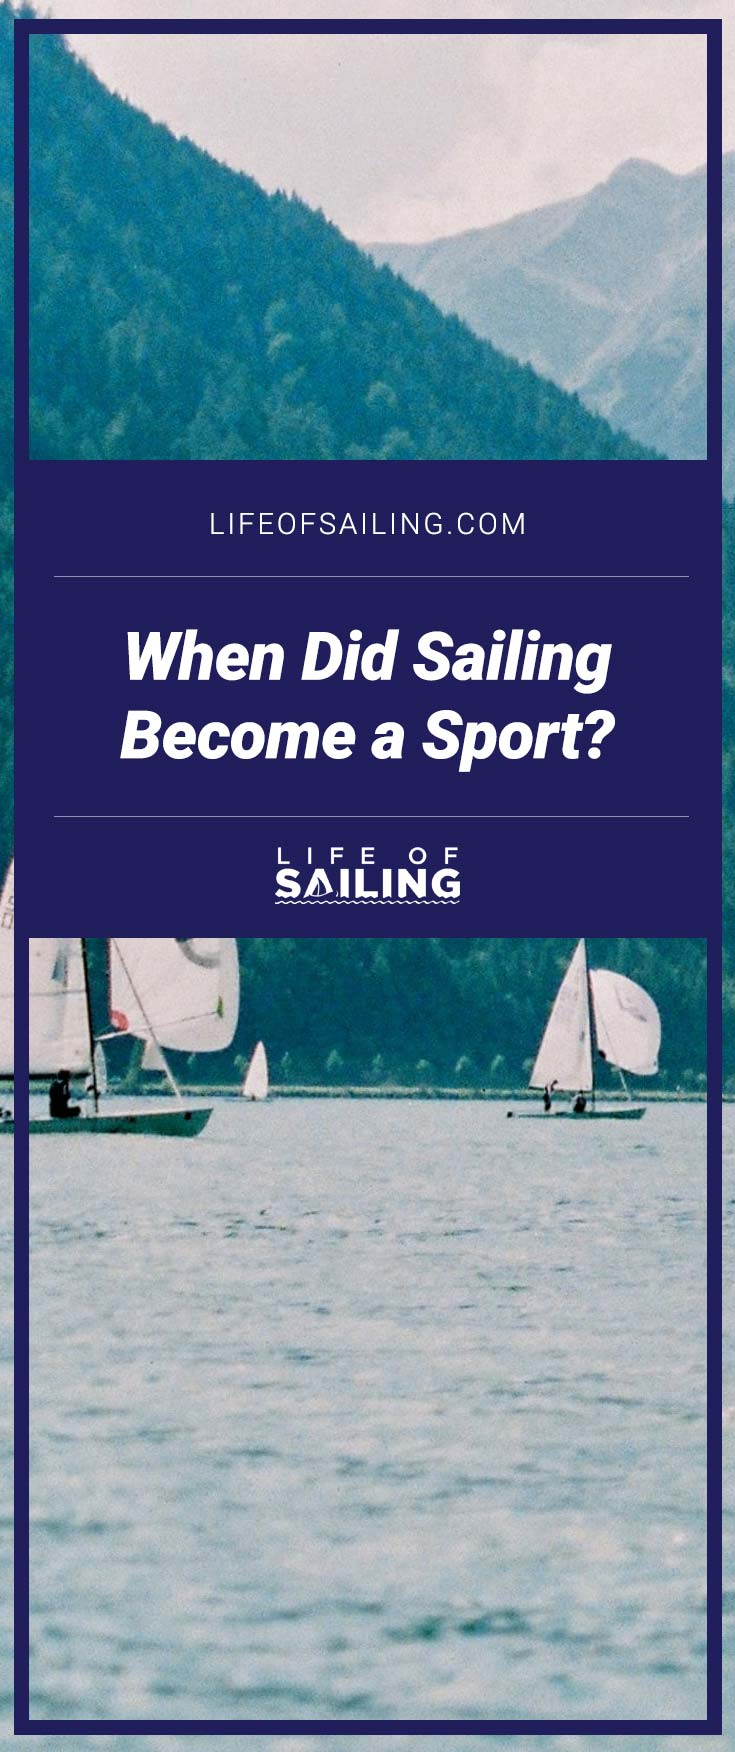 When did Sailing become a Sport?